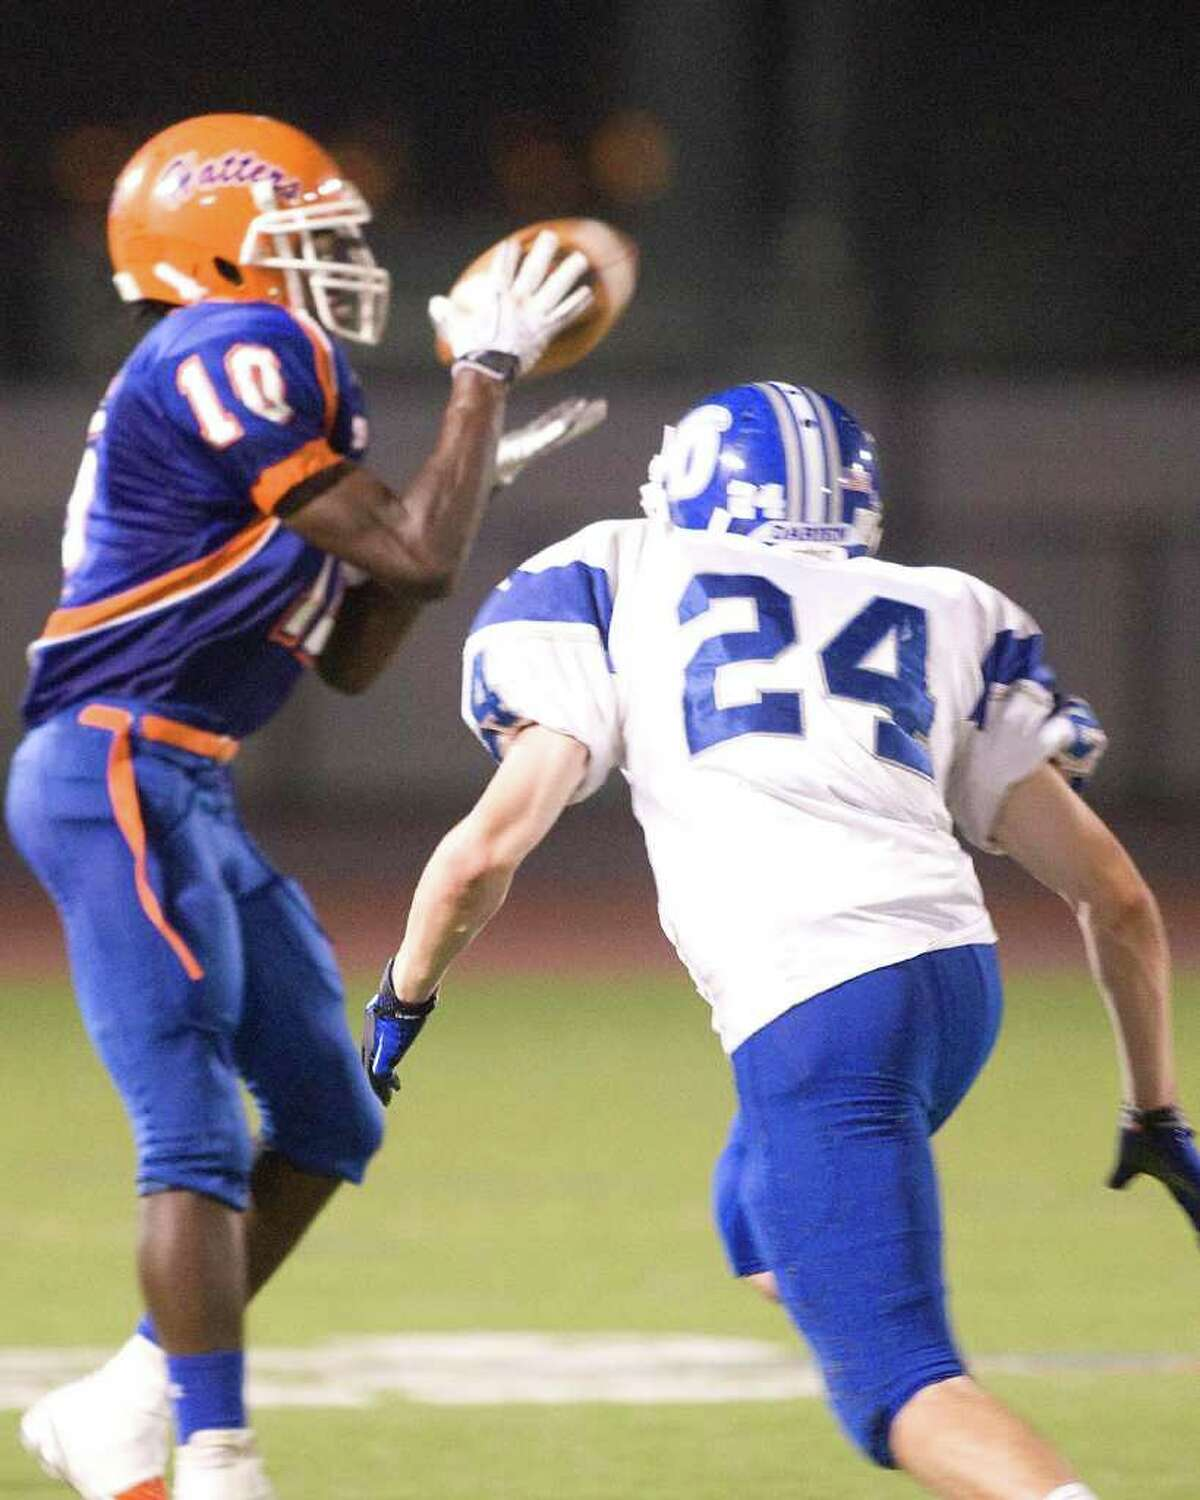 Danbury's Daryle-Michael Dennis (10) catches a pass before being stopped by Darien's Peter McDonough during their FCIAC game Friday night, Sept. 24, 2010, at Danbury High School.